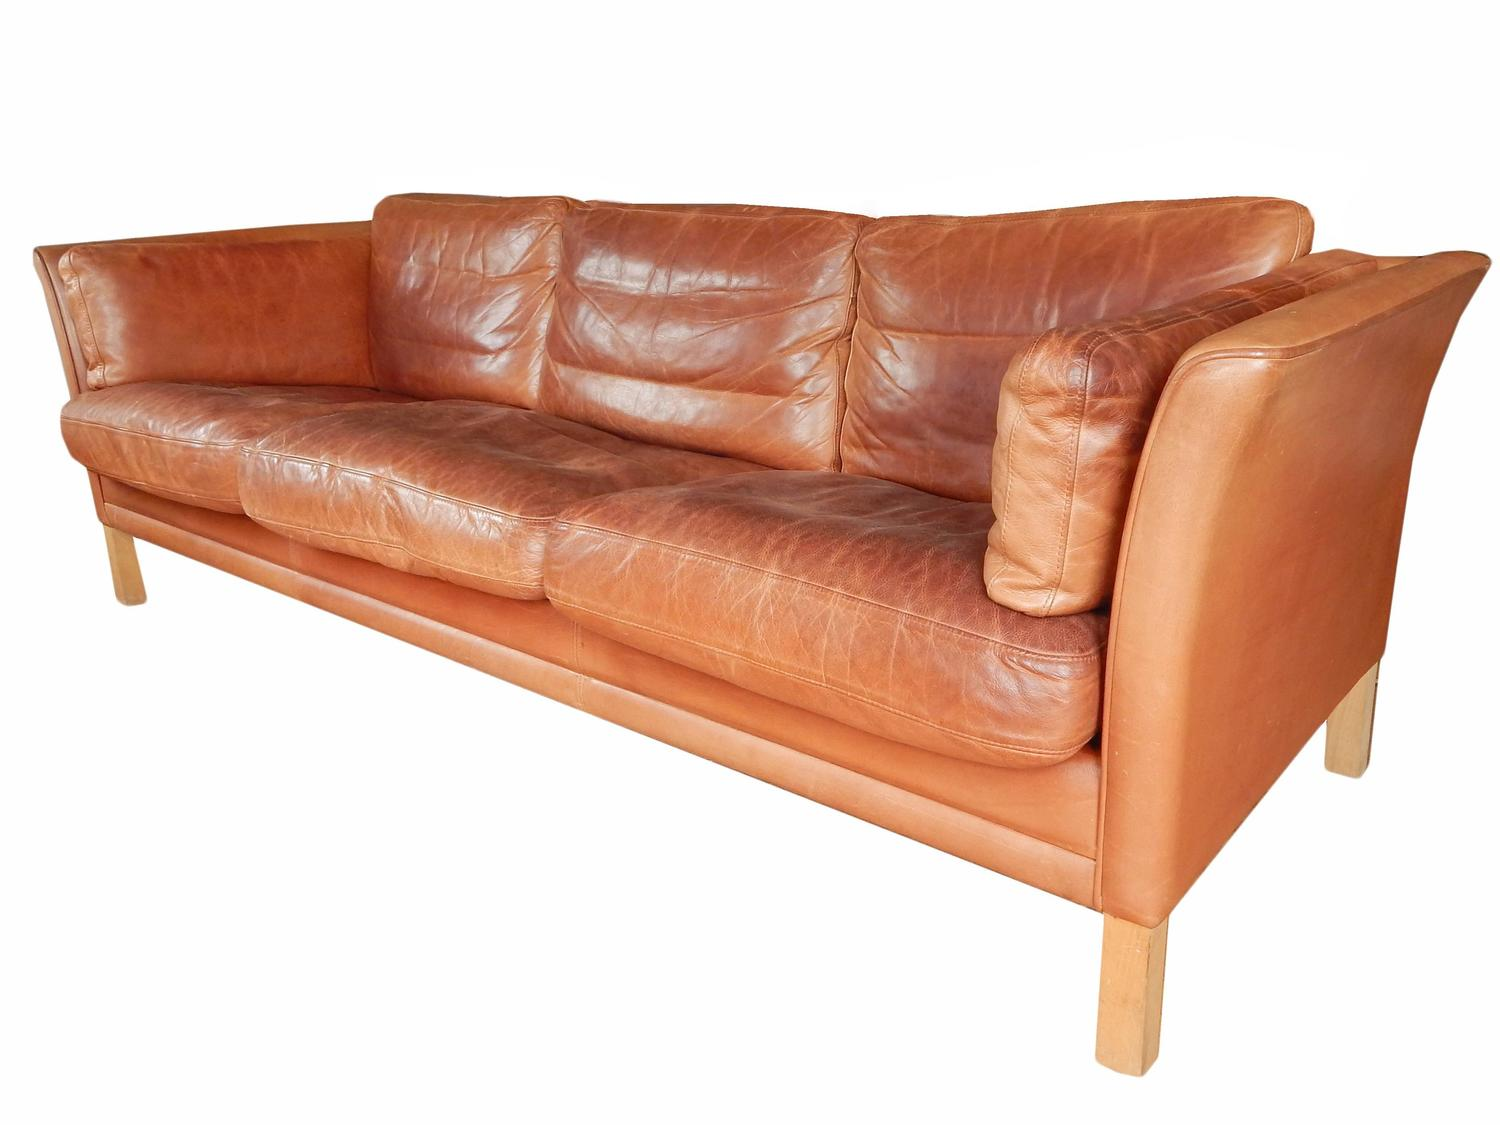 Danish Mid Century Leather Sofa For Sale At 1stdibs